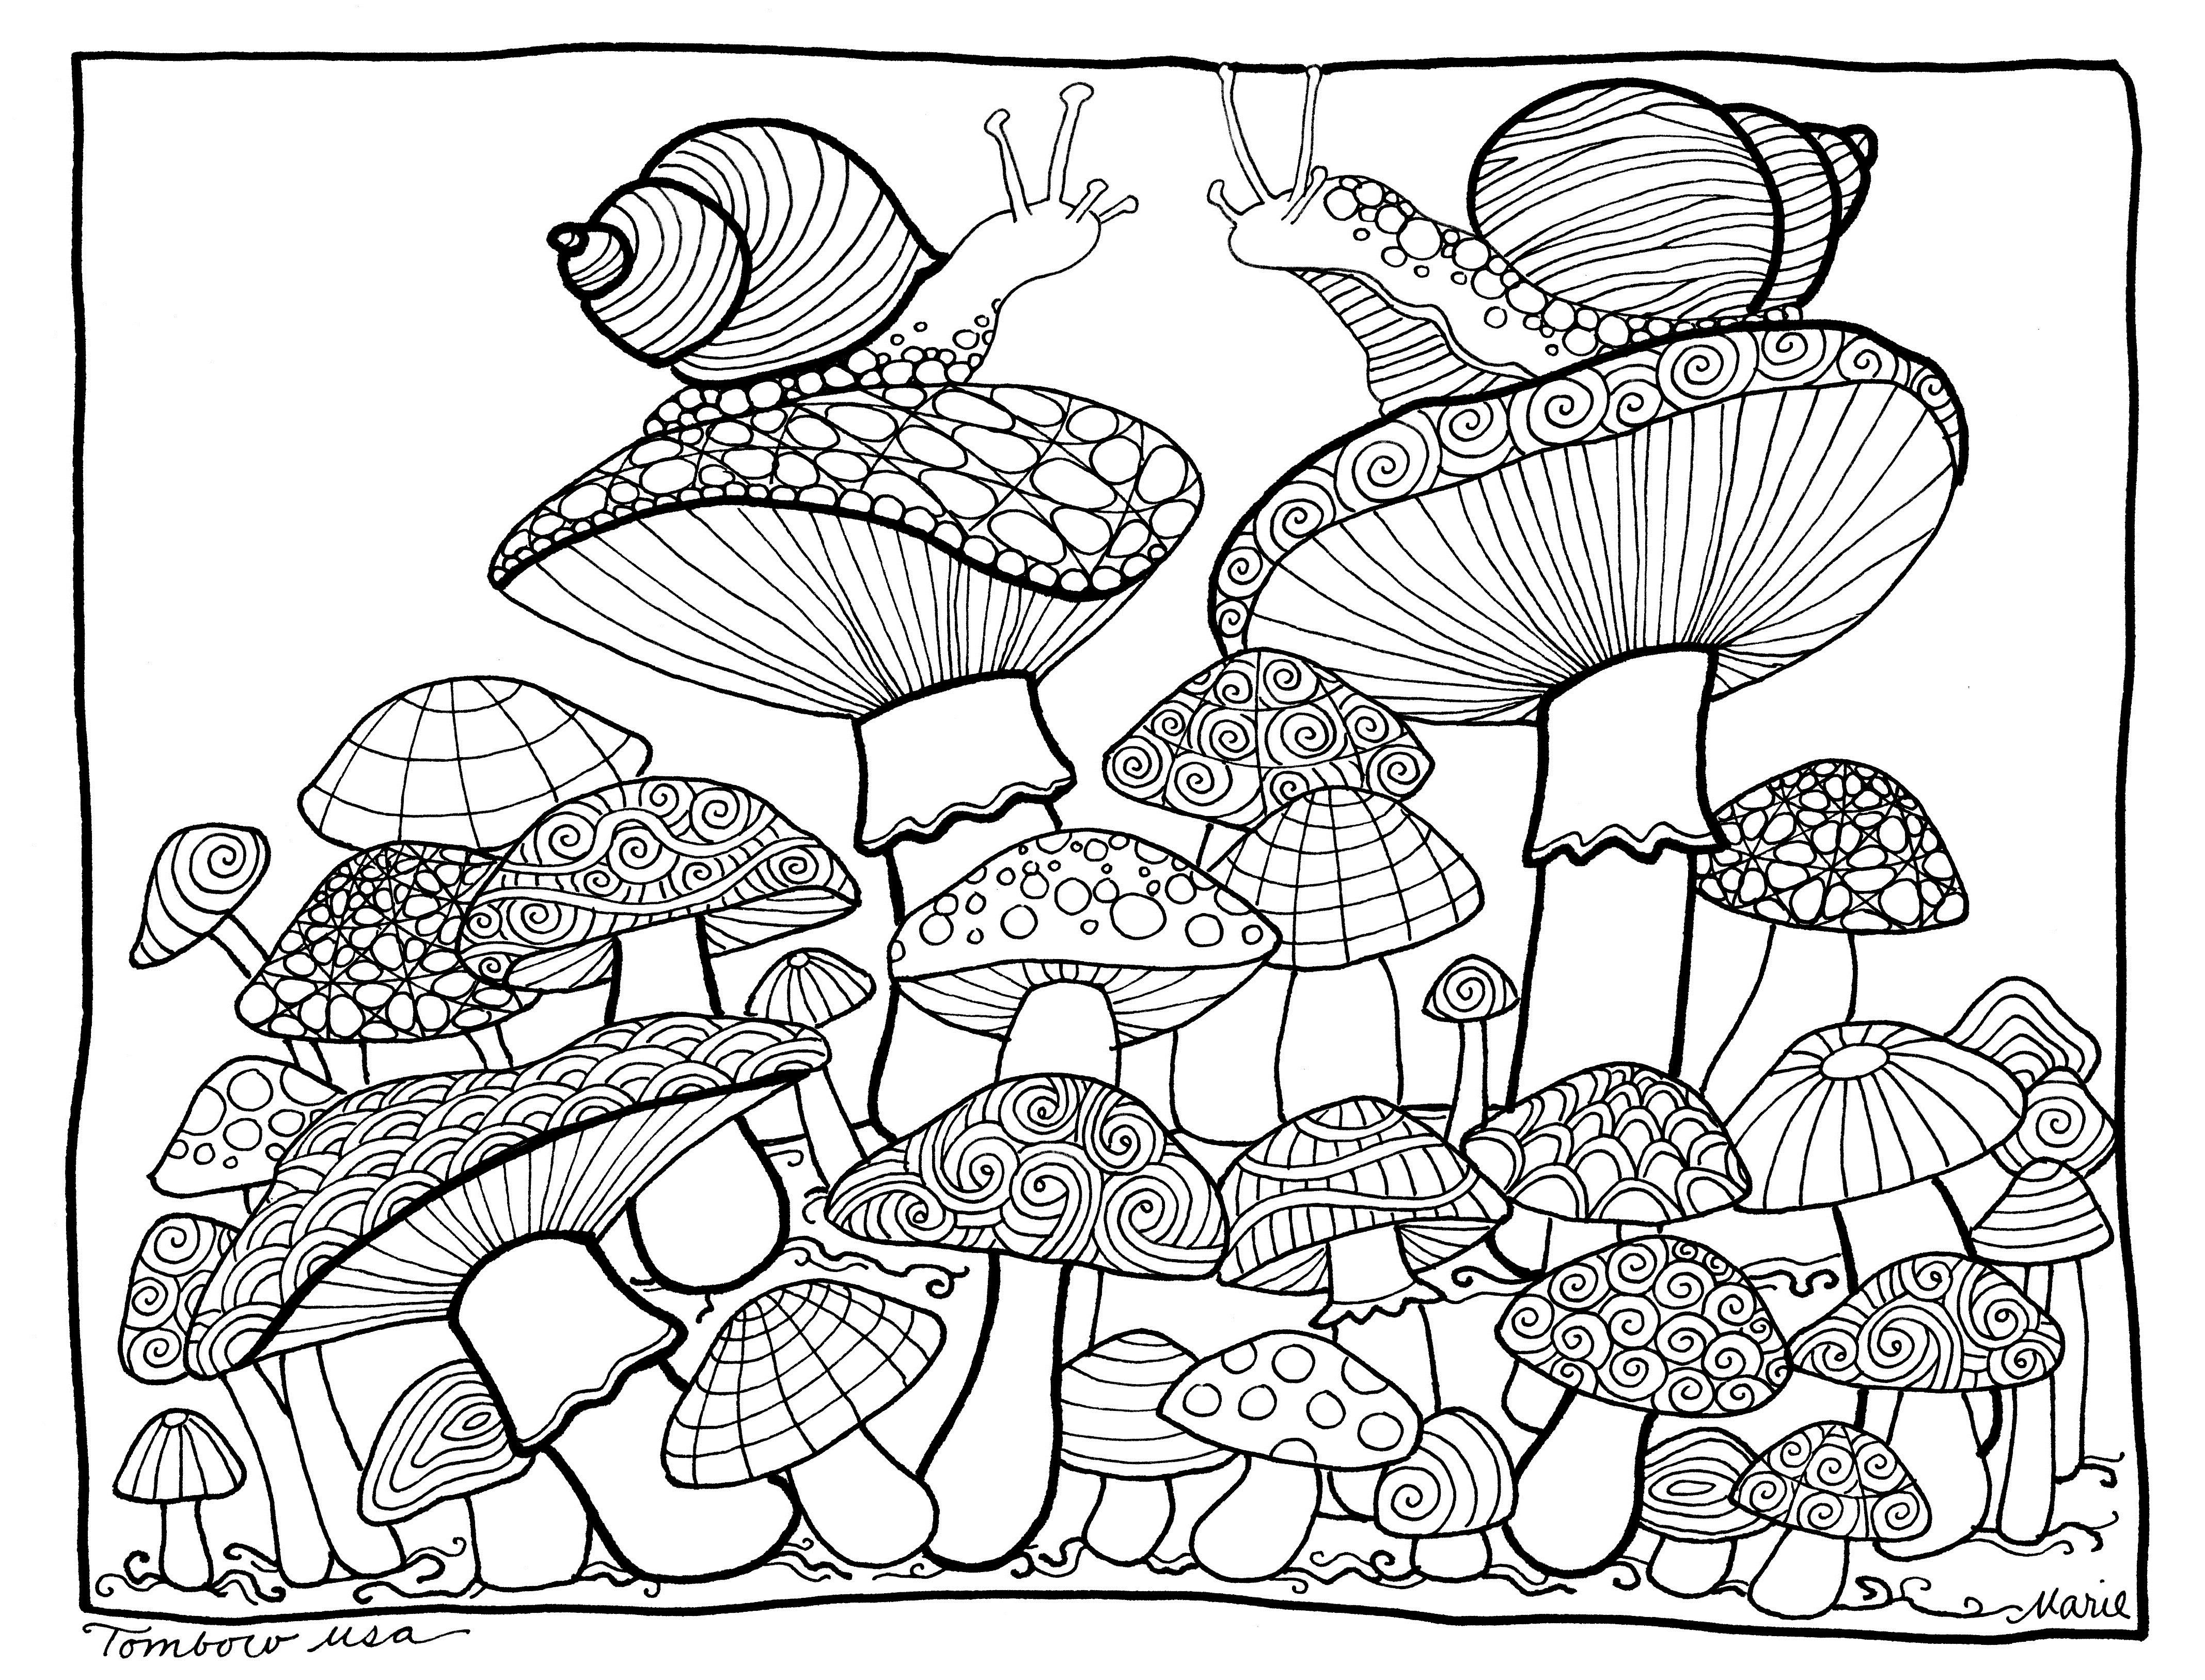 Mushrooms Coloring Pagetombow Usa   Paper   Coloring Pages, Free - Free Printable Mushroom Coloring Pages